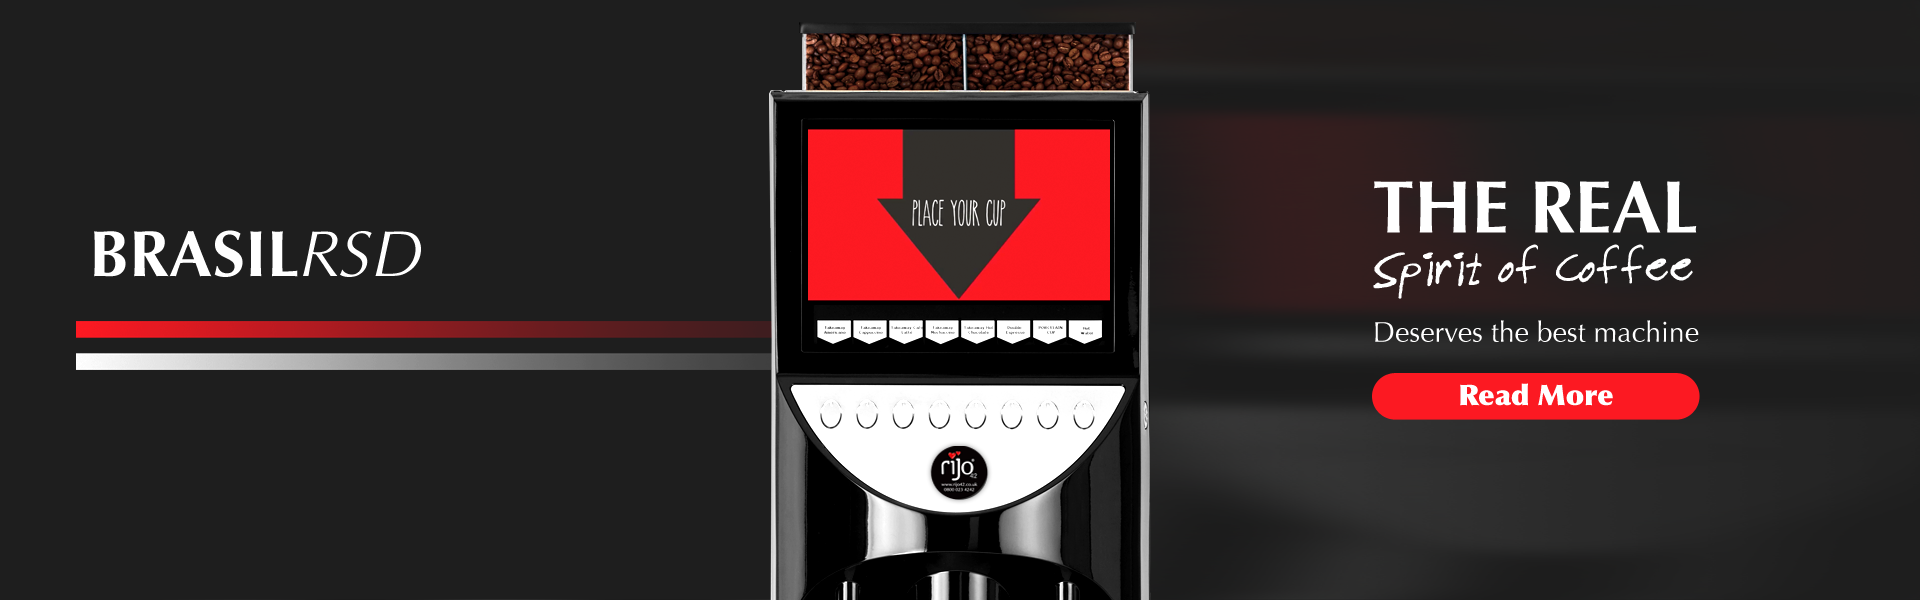 Brasil RSD Coffee Machine